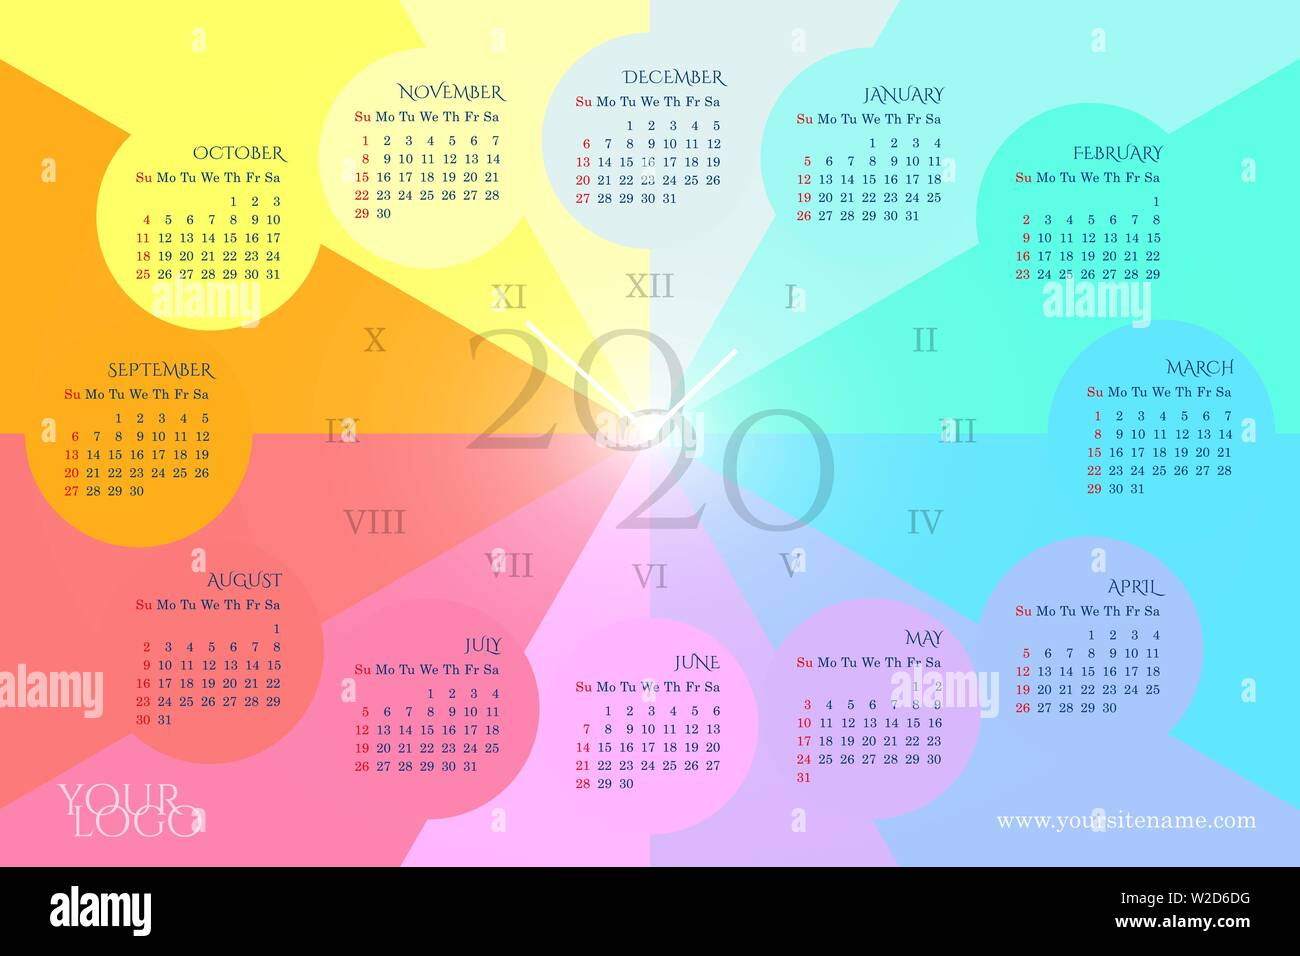 Roman Calendar 2020 Rainbow wall calendar 2020 in the form of a clock with months in